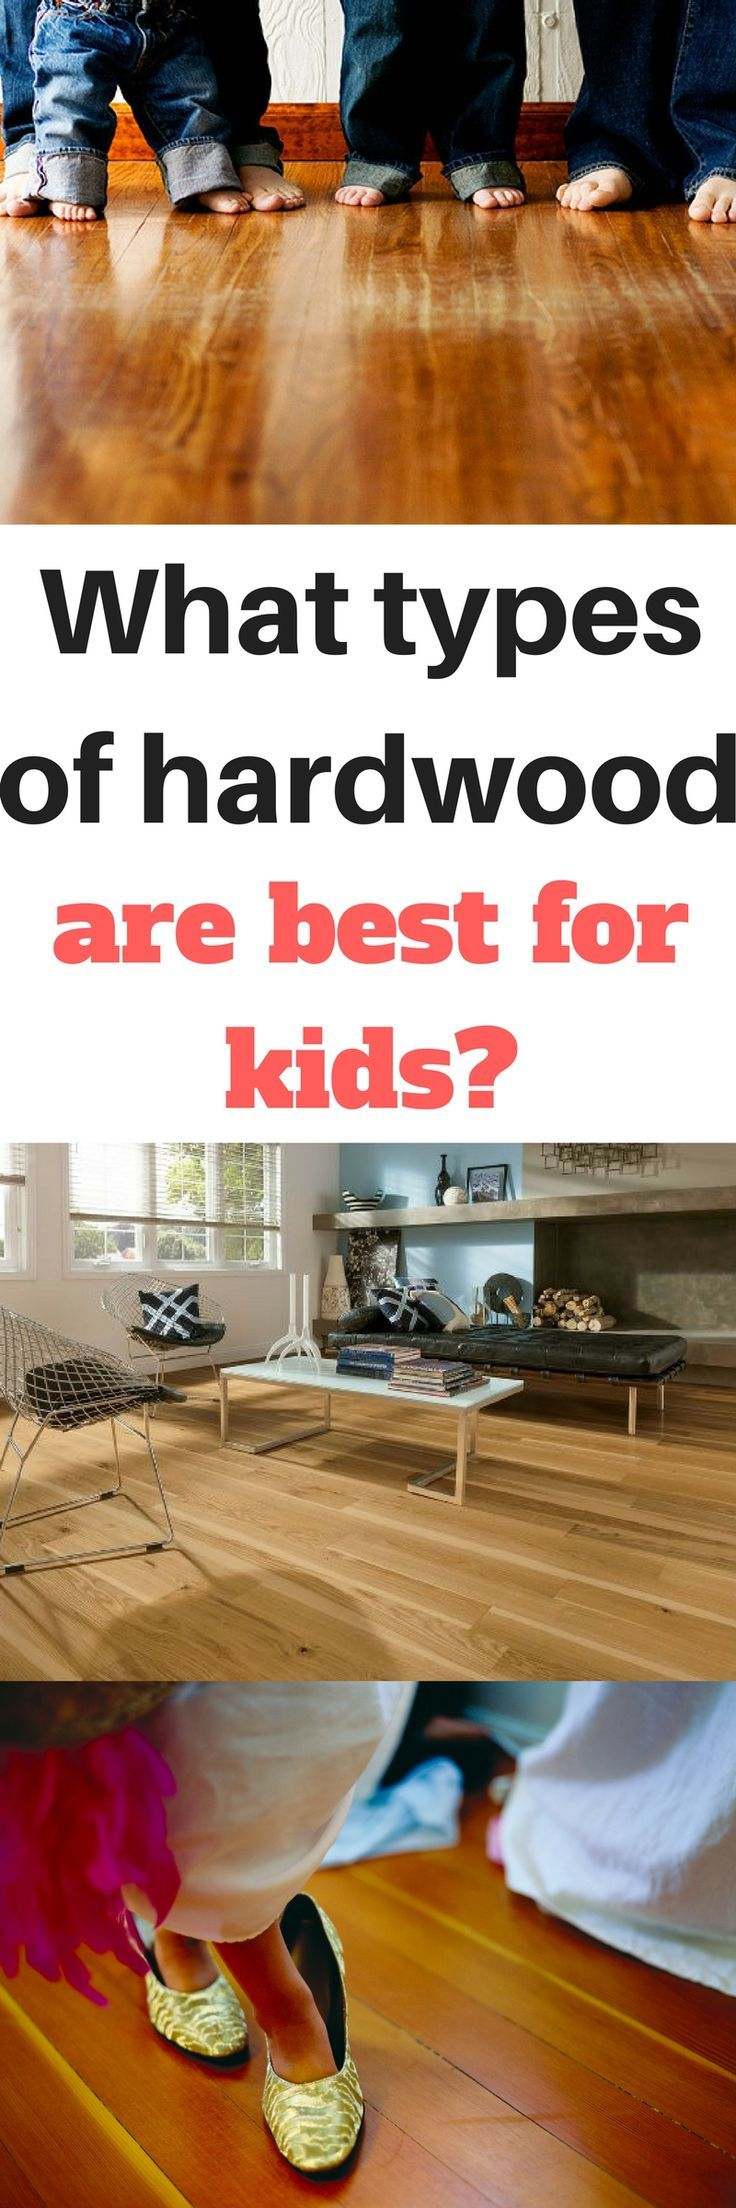 What types of hardwood flooring hold up best to kids and busy households? Best hardwood floor for kids, floors to avoid and tips to prevent scratches.